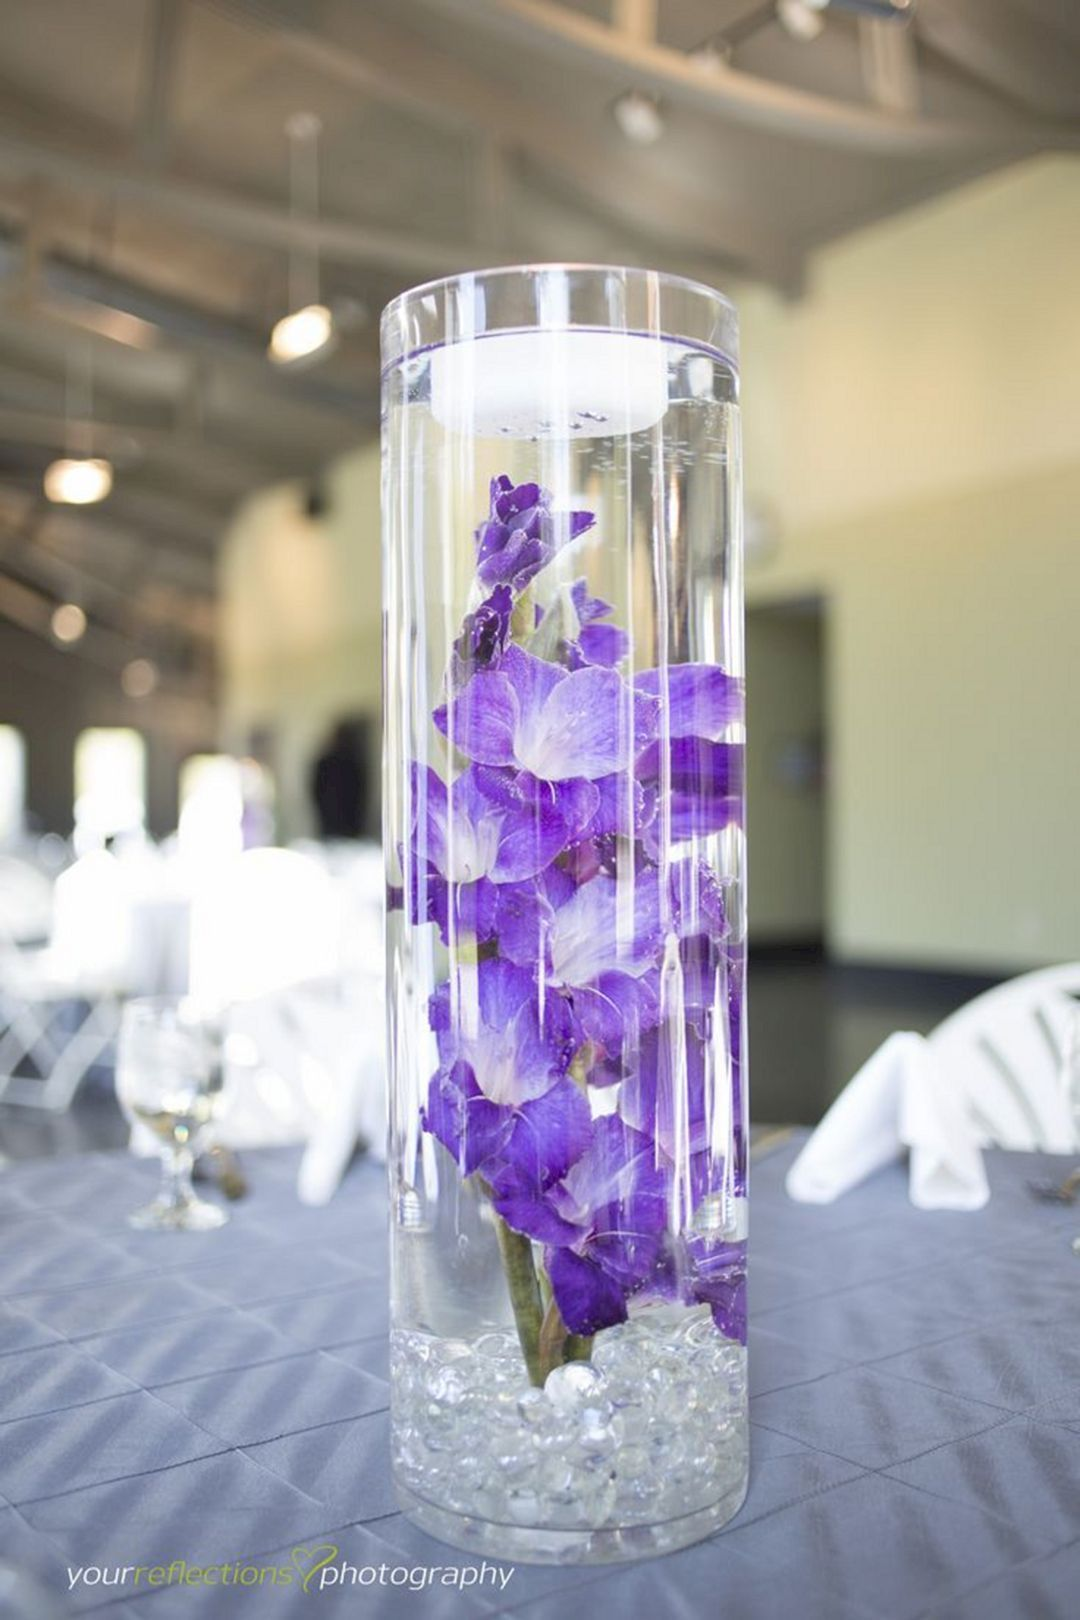 25 Beautiful Diy Wedding Centerpieces Design Ideas On A